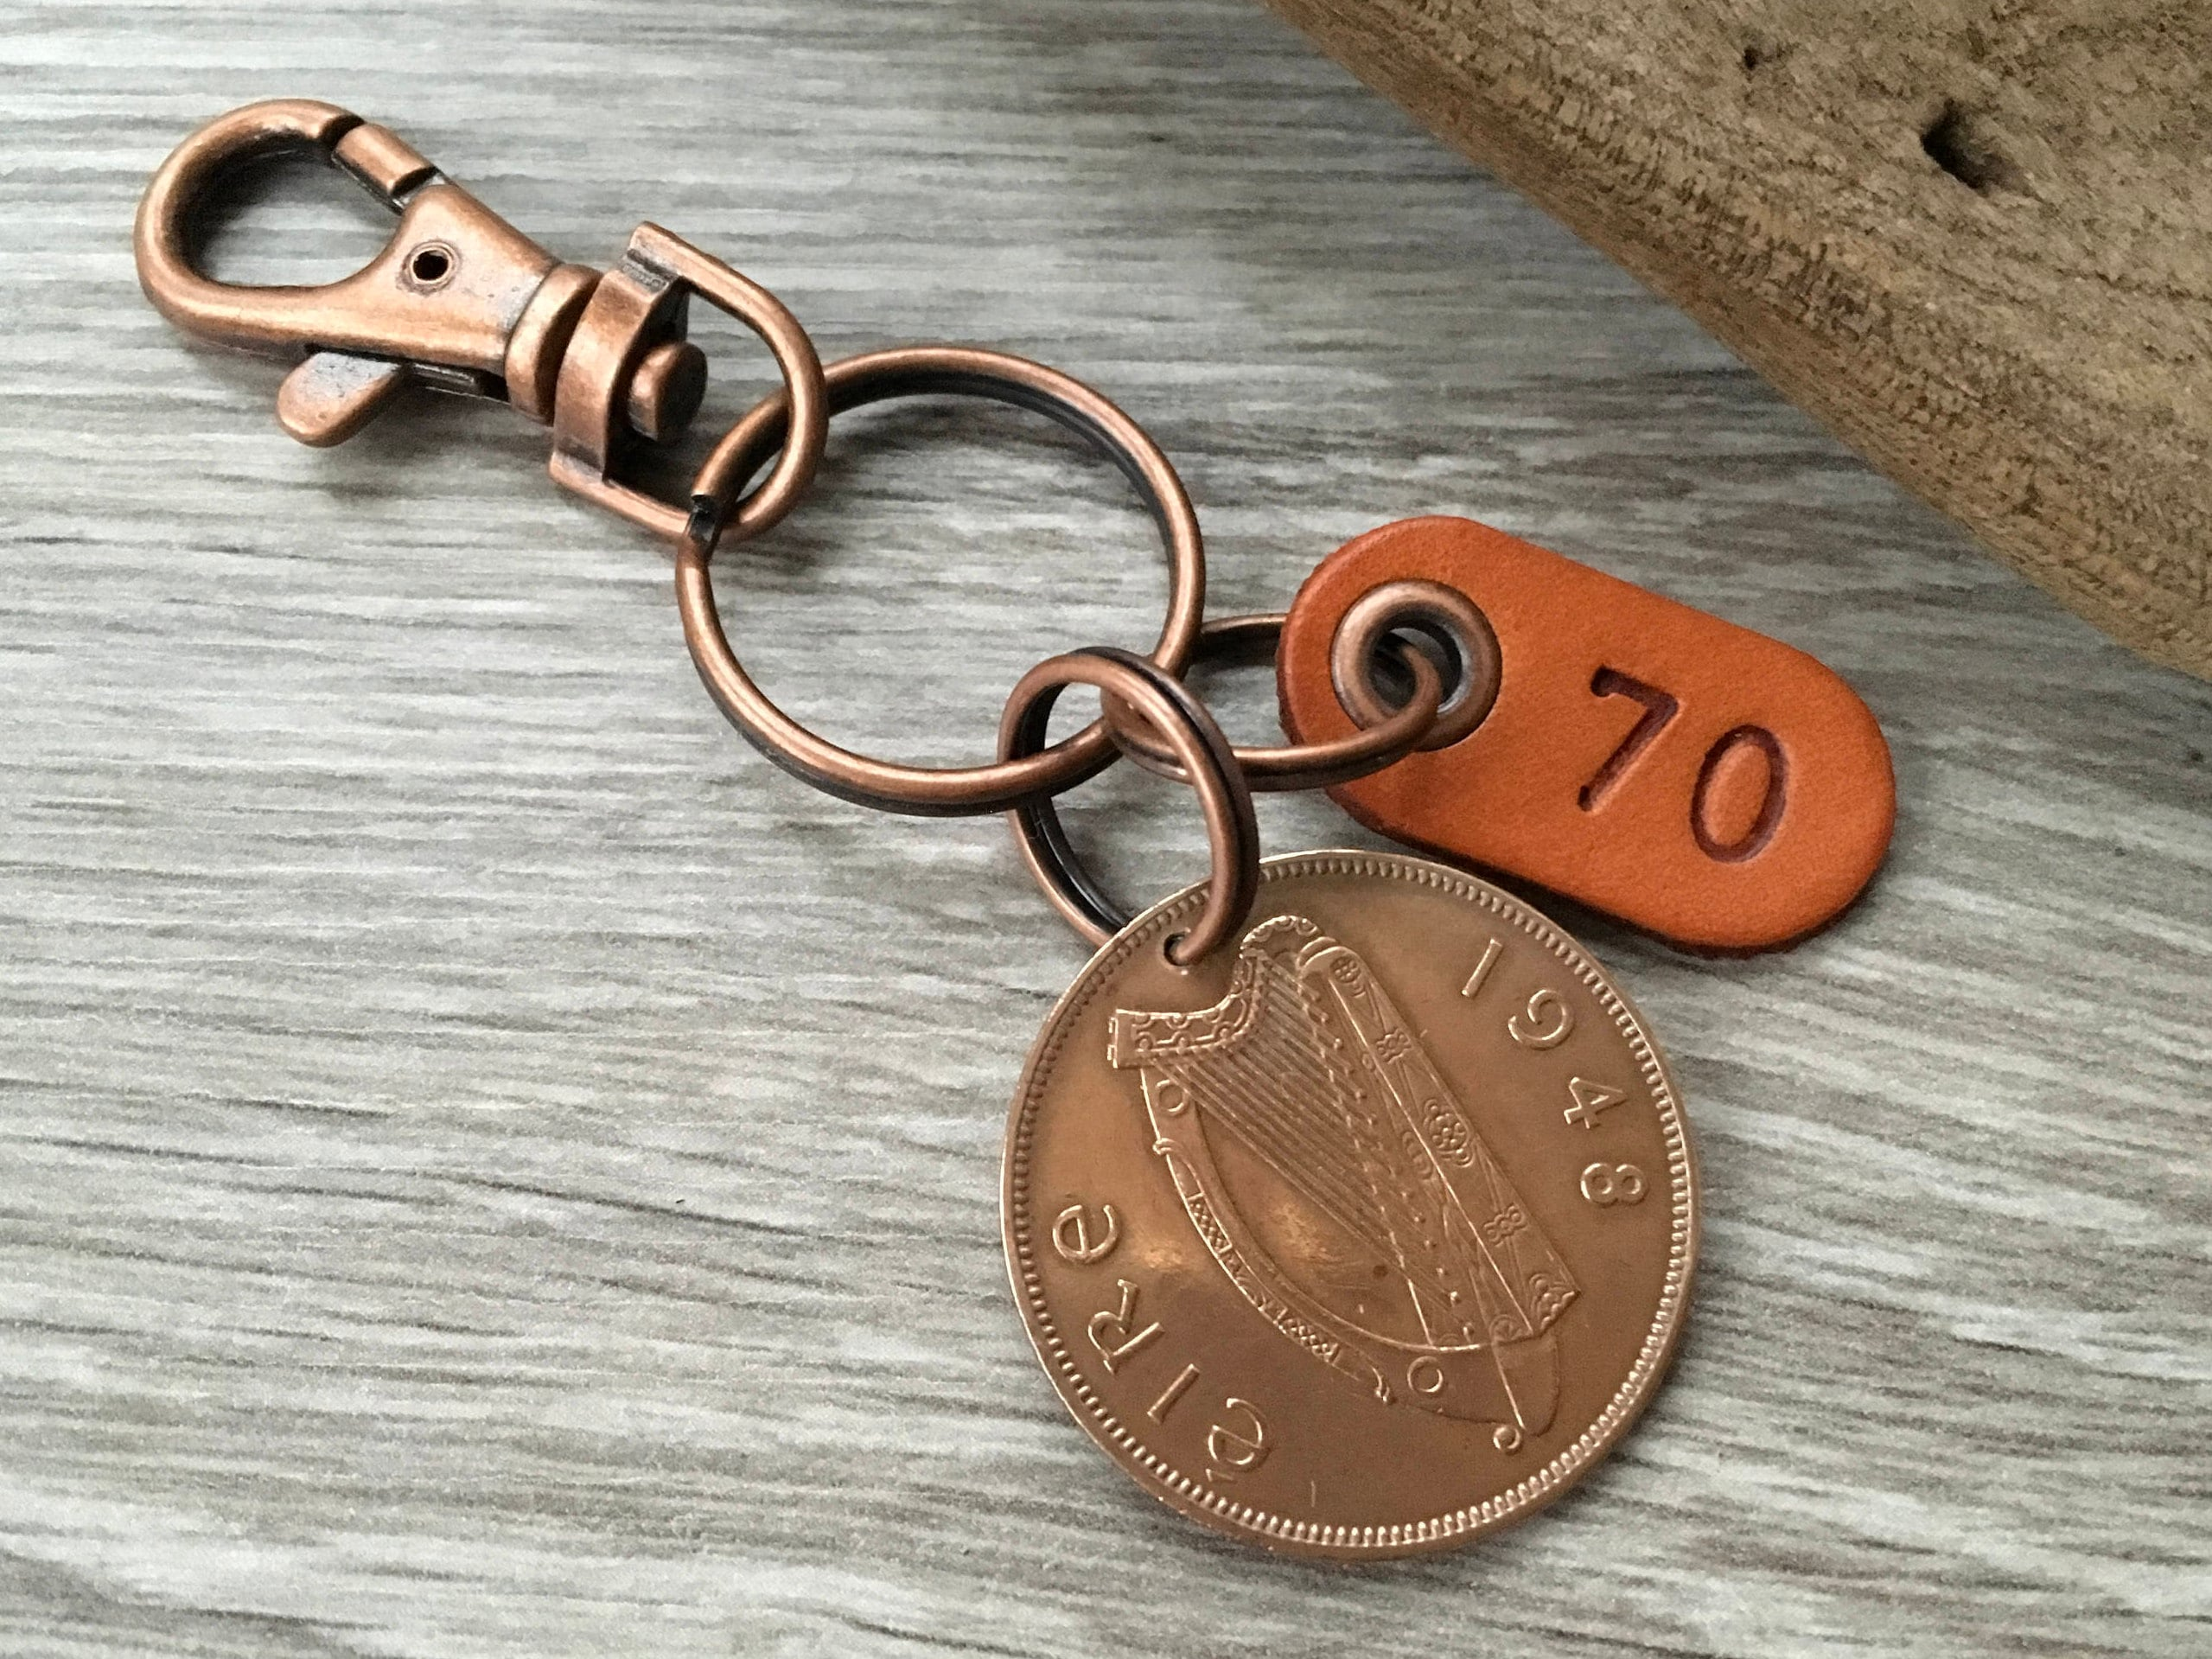 70th Birthday Gift 1948 Or 1949 Irish Penny Keychain Harp Coin Keyring Good Luck 70 Years Bag Charm Anniversary Present Man Woman Him